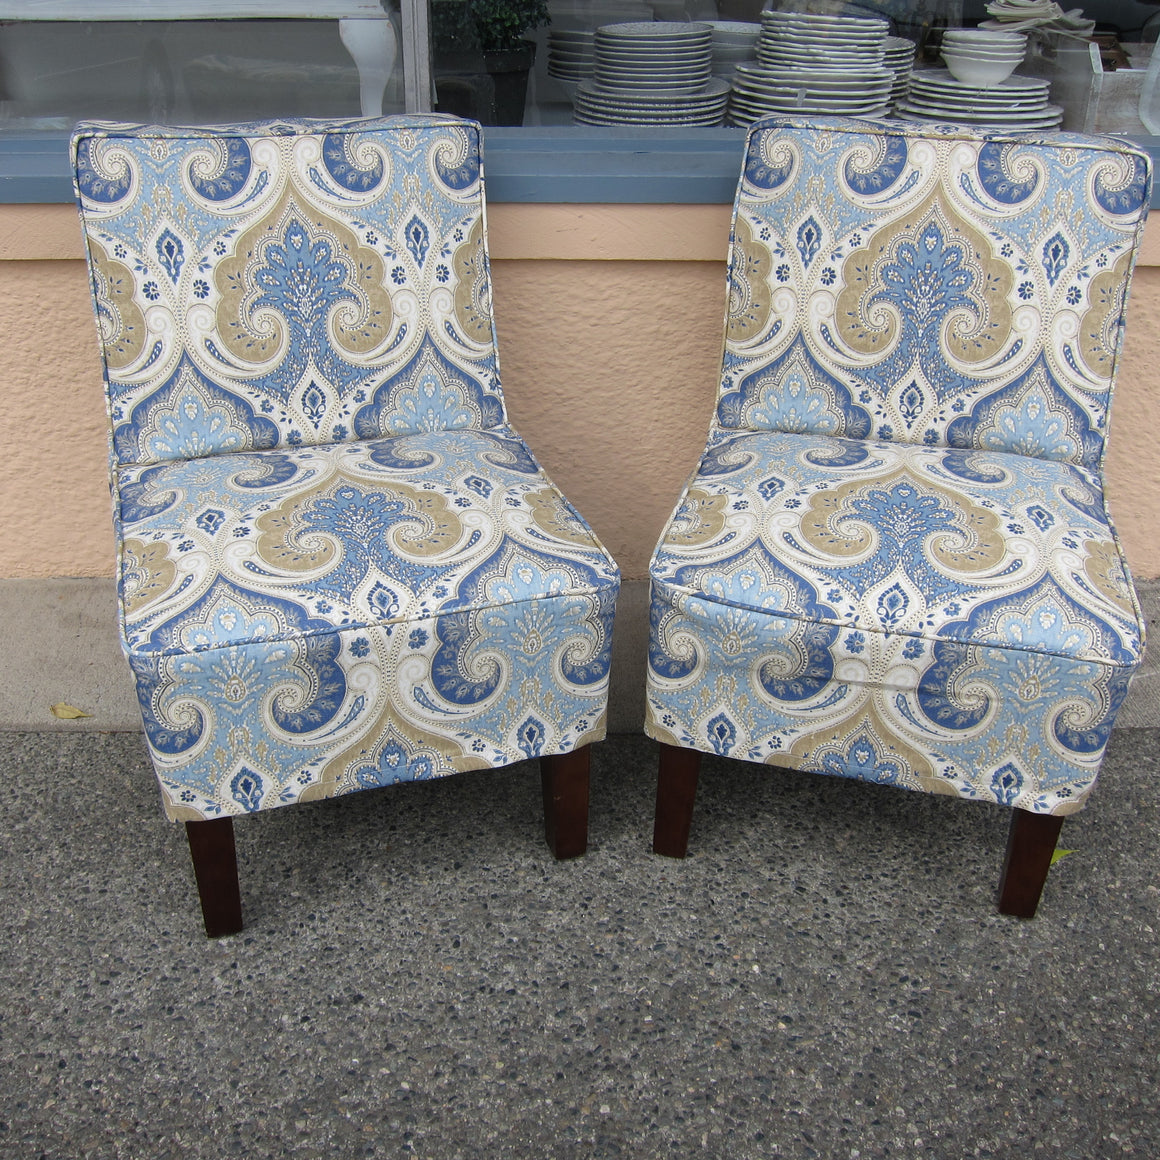 Vintage Slipper Chair with Blue Linen Slipcover